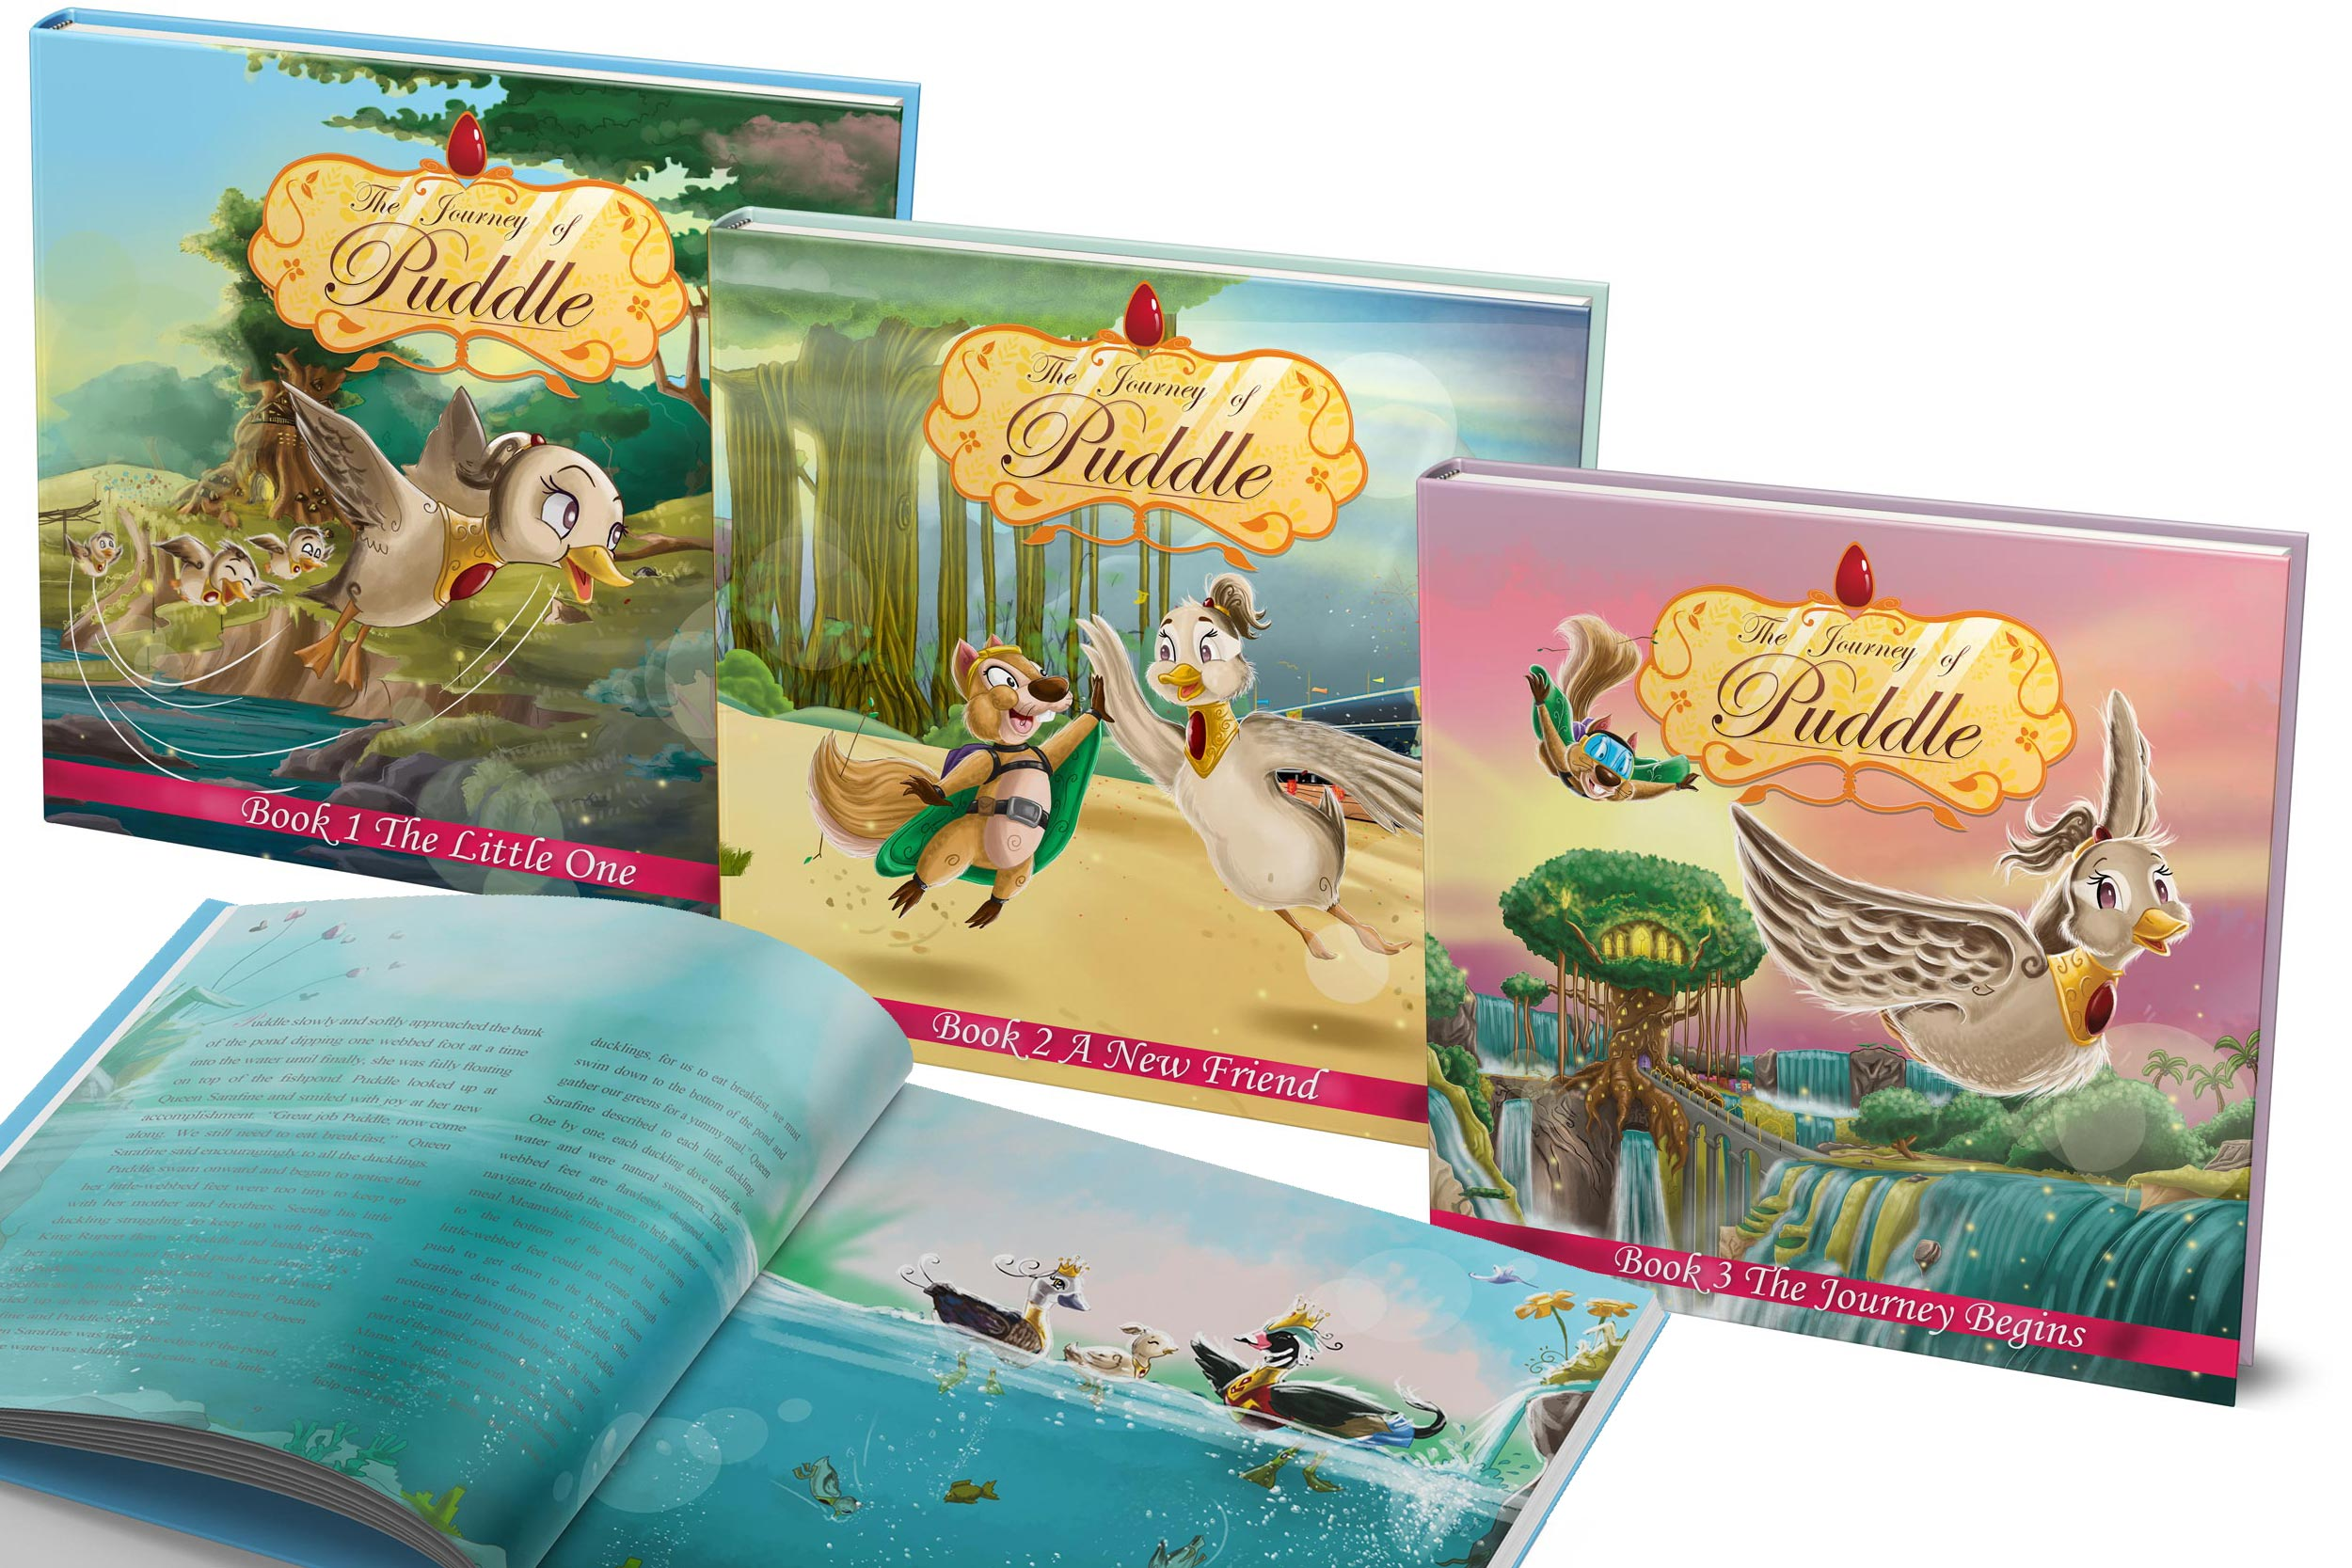 Your Faithful Adventurous Story Time Awaits… - Journey to the Land of Creation where Princess Puddle awaits to take you and your little ones on an adventure of a lifetime! From the mind of the emerging author, Devon Allen comes a fully illustrated trilogy beautifully designed to capture the hearts of everyone. With a story themed around a family bond, exhilarating flying action sequences, everlasting friendships and undeniable faith through it all…The Journey of Puddle is sure to keep your little ones engaged to the very last page!